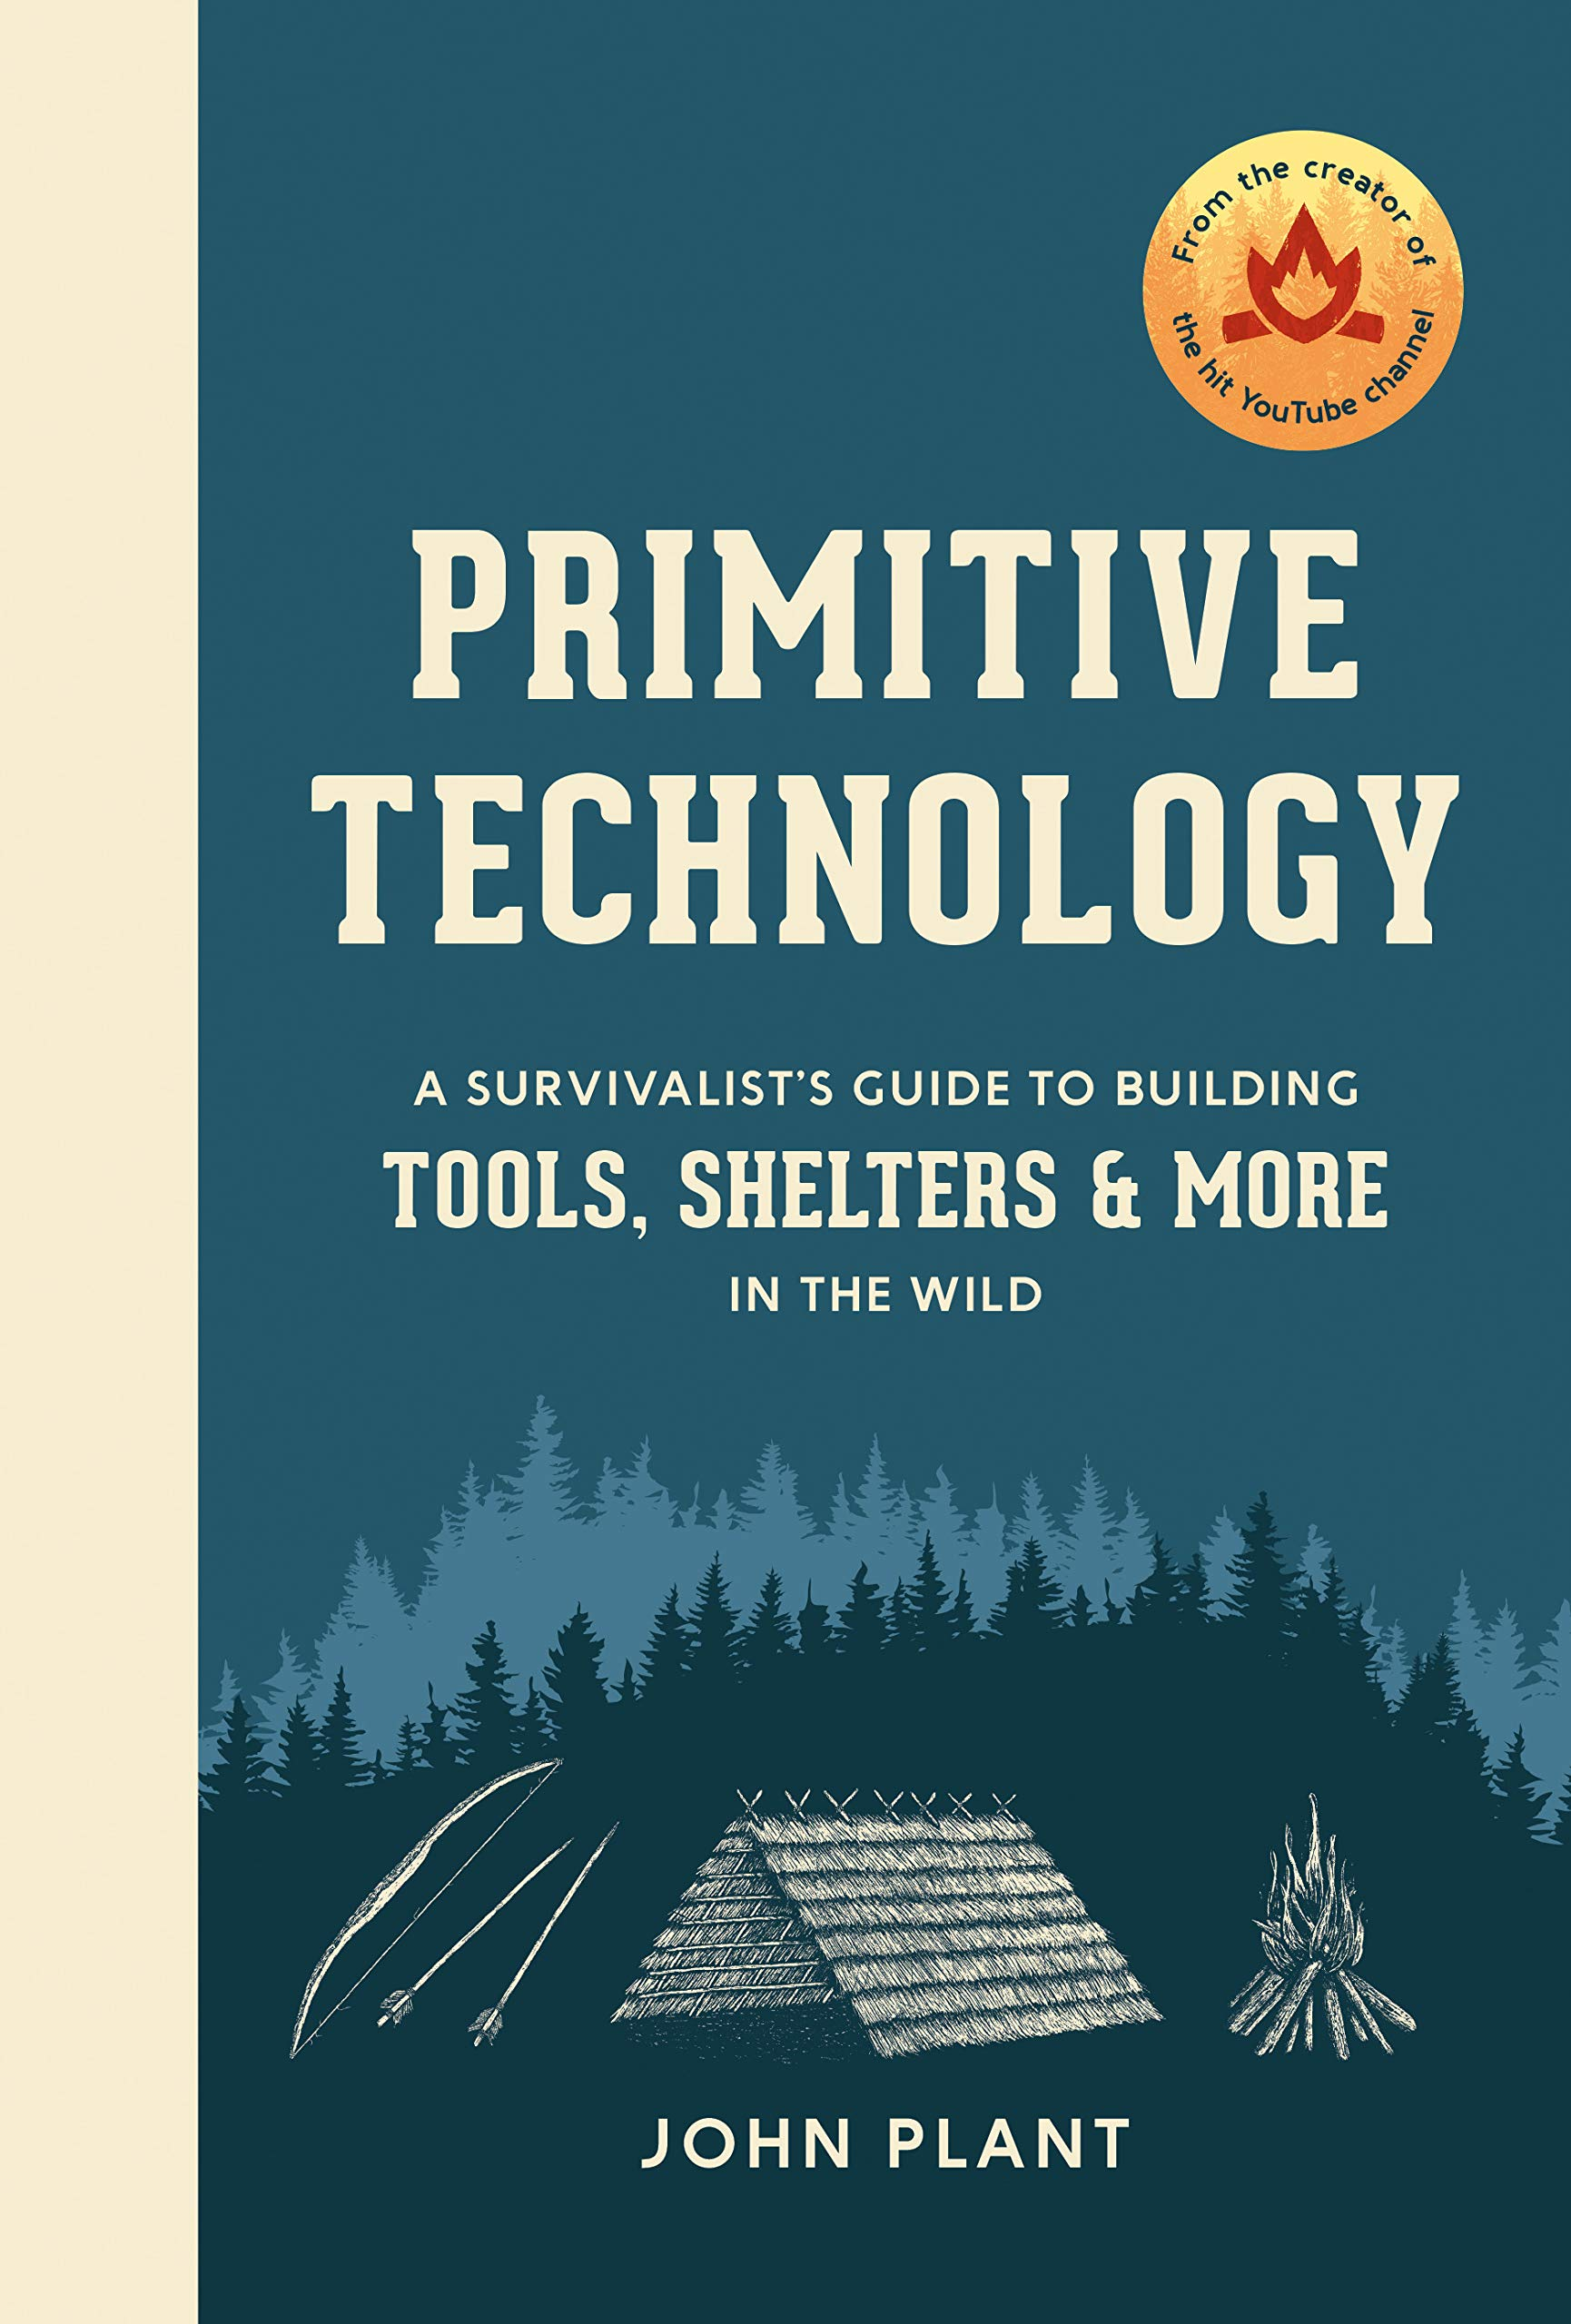 Primitive Technology: A Survivalist's Guide to Building Tools, Shelters, and More in the Wild by Clarkson Potter